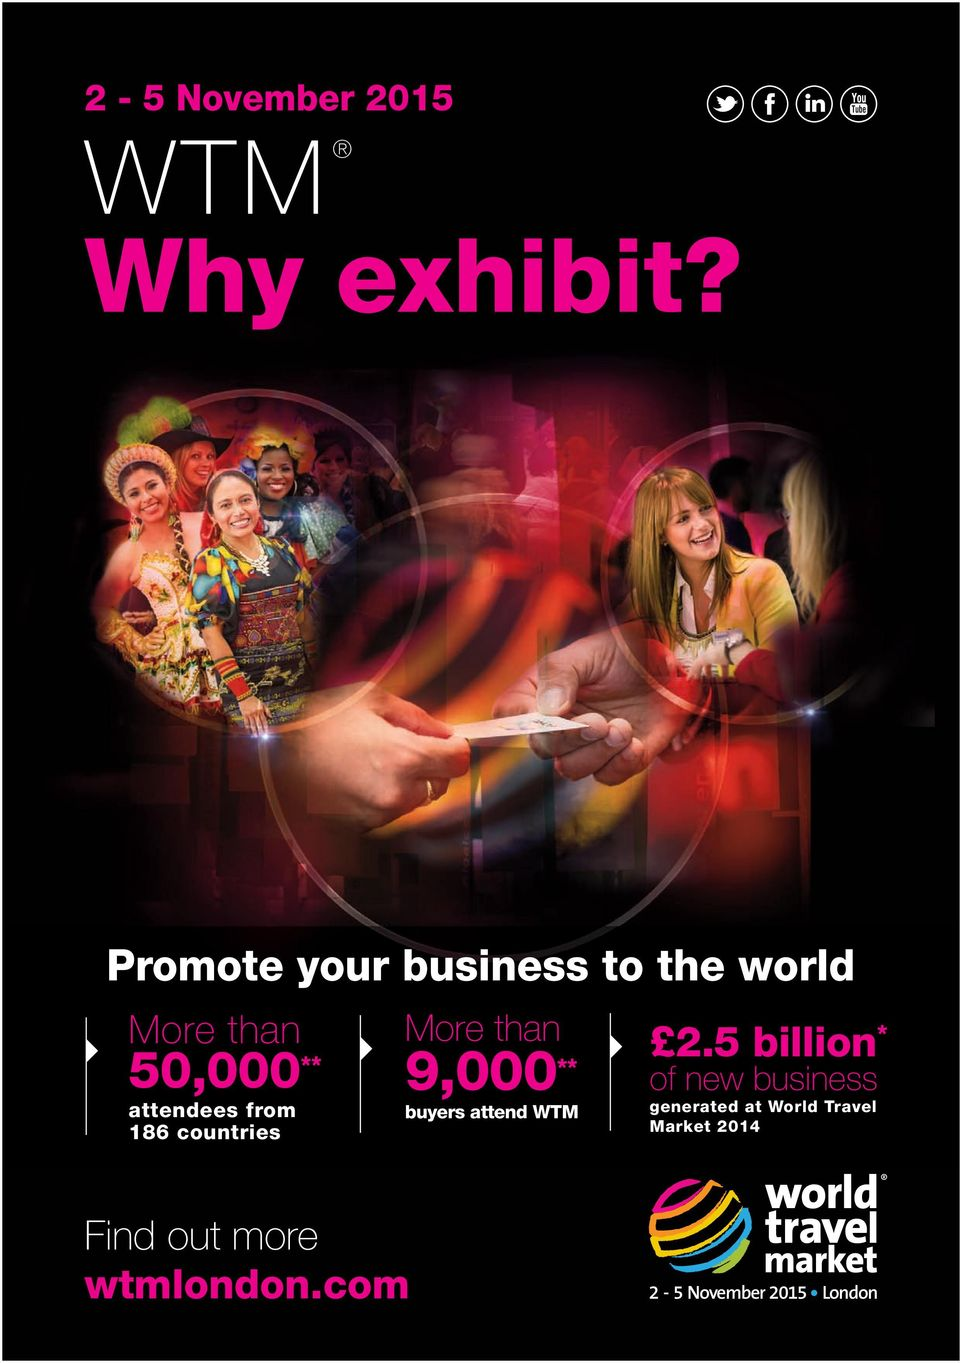 from 186 countries More than 9,000 ** buyers attend WTM 2.